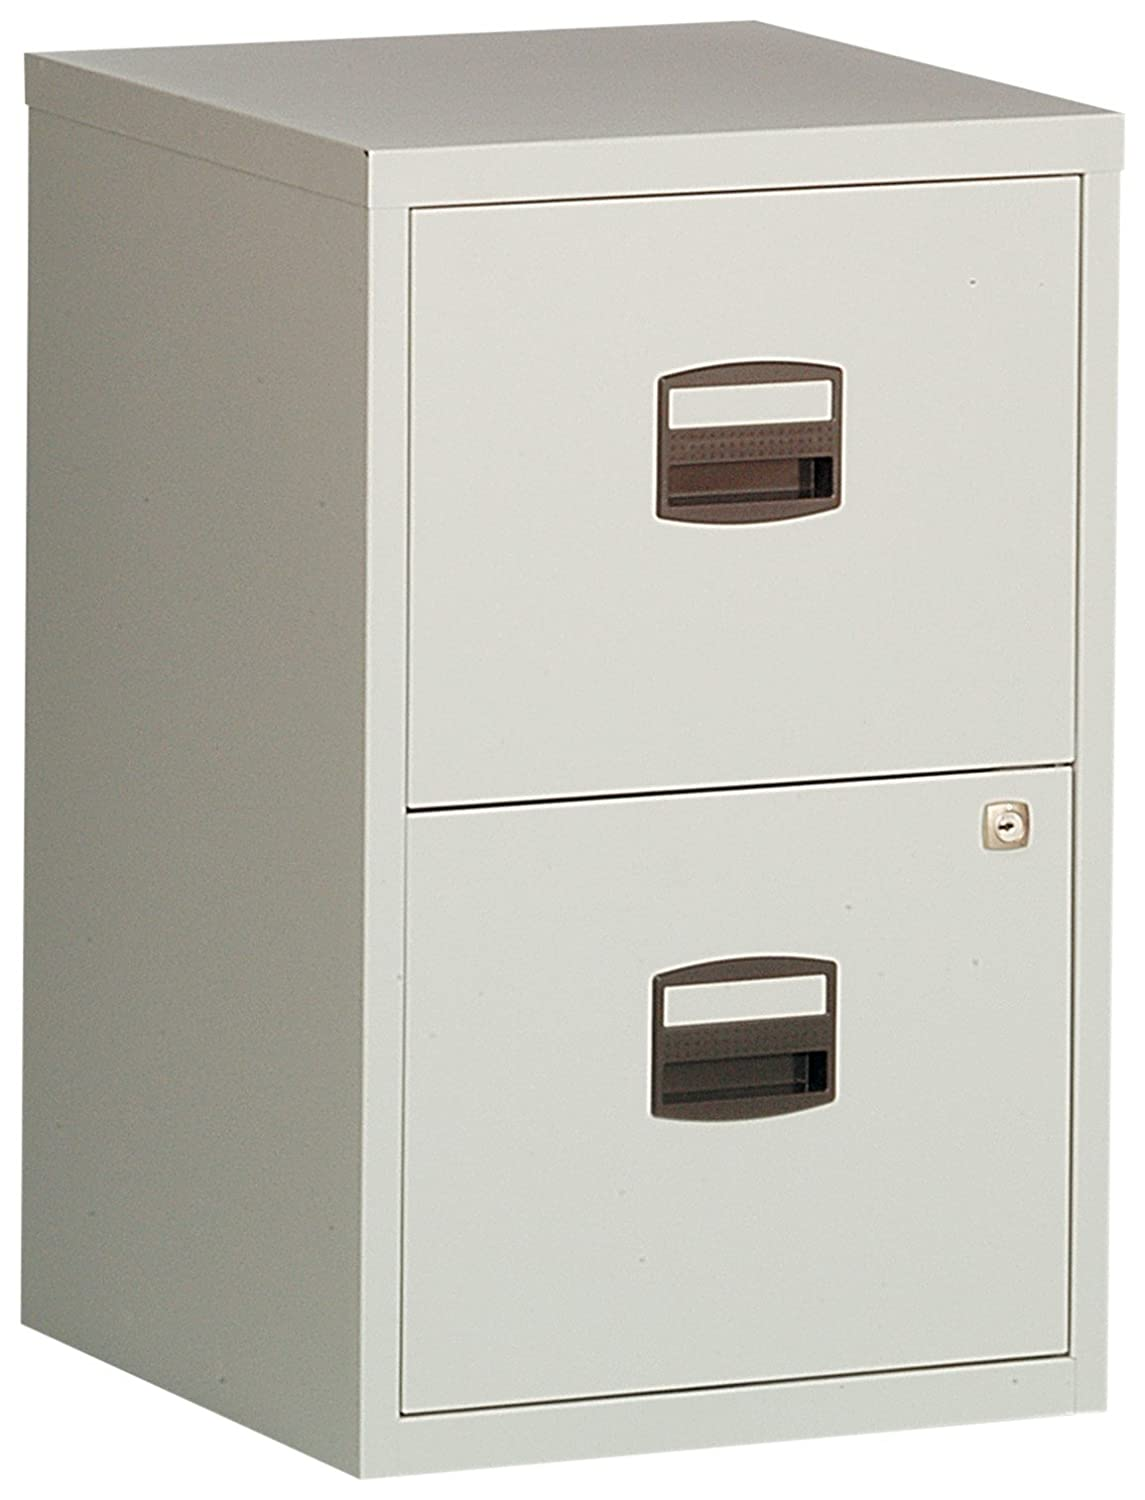 Bisley Steel  Drawer Filing Cabinet Grey Amazon Co Uk Kitchen Home